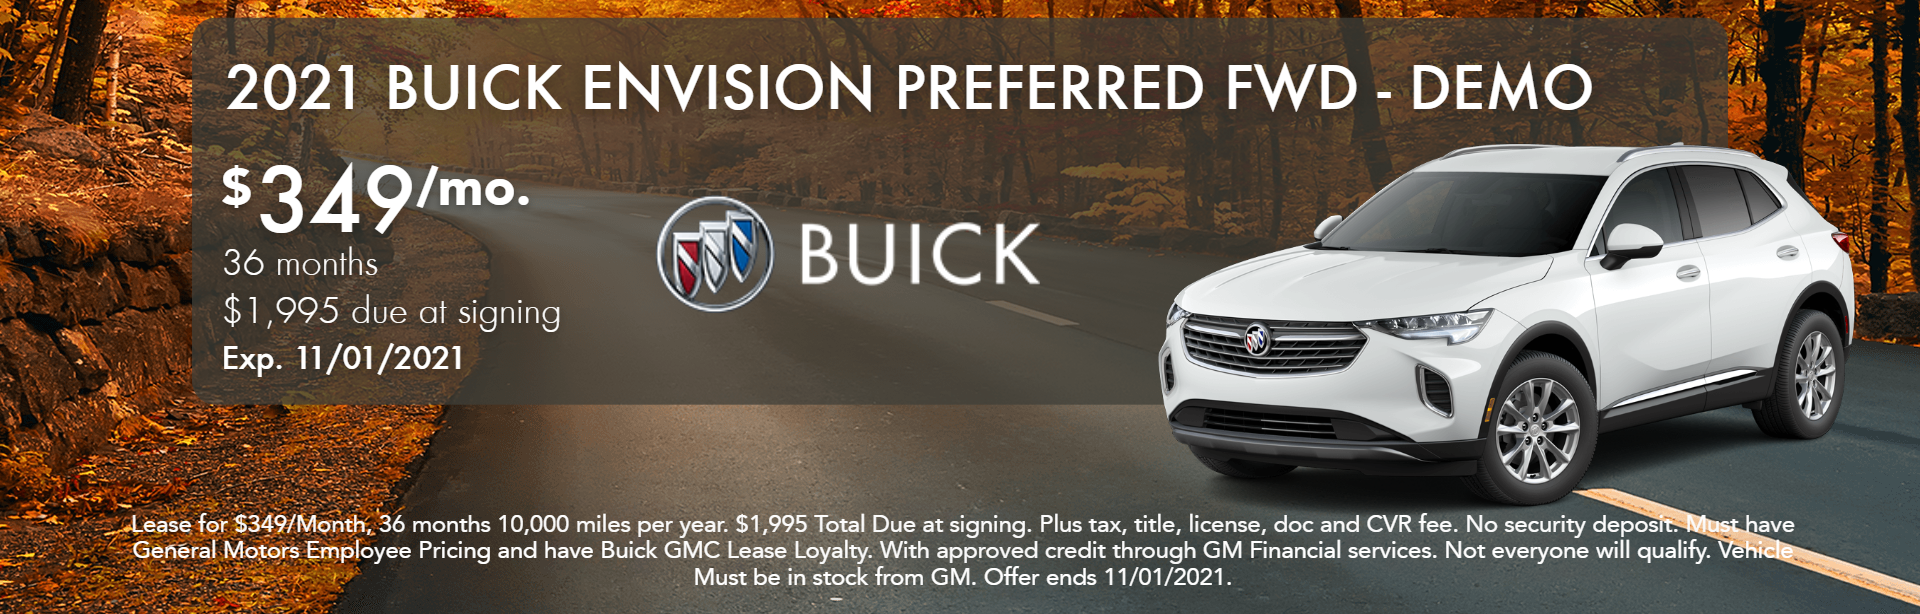 2021_Buick_Envision_Preferred_Mon Oct 04 2021 09_47_41 GMT-0400 (Eastern Daylight Time)